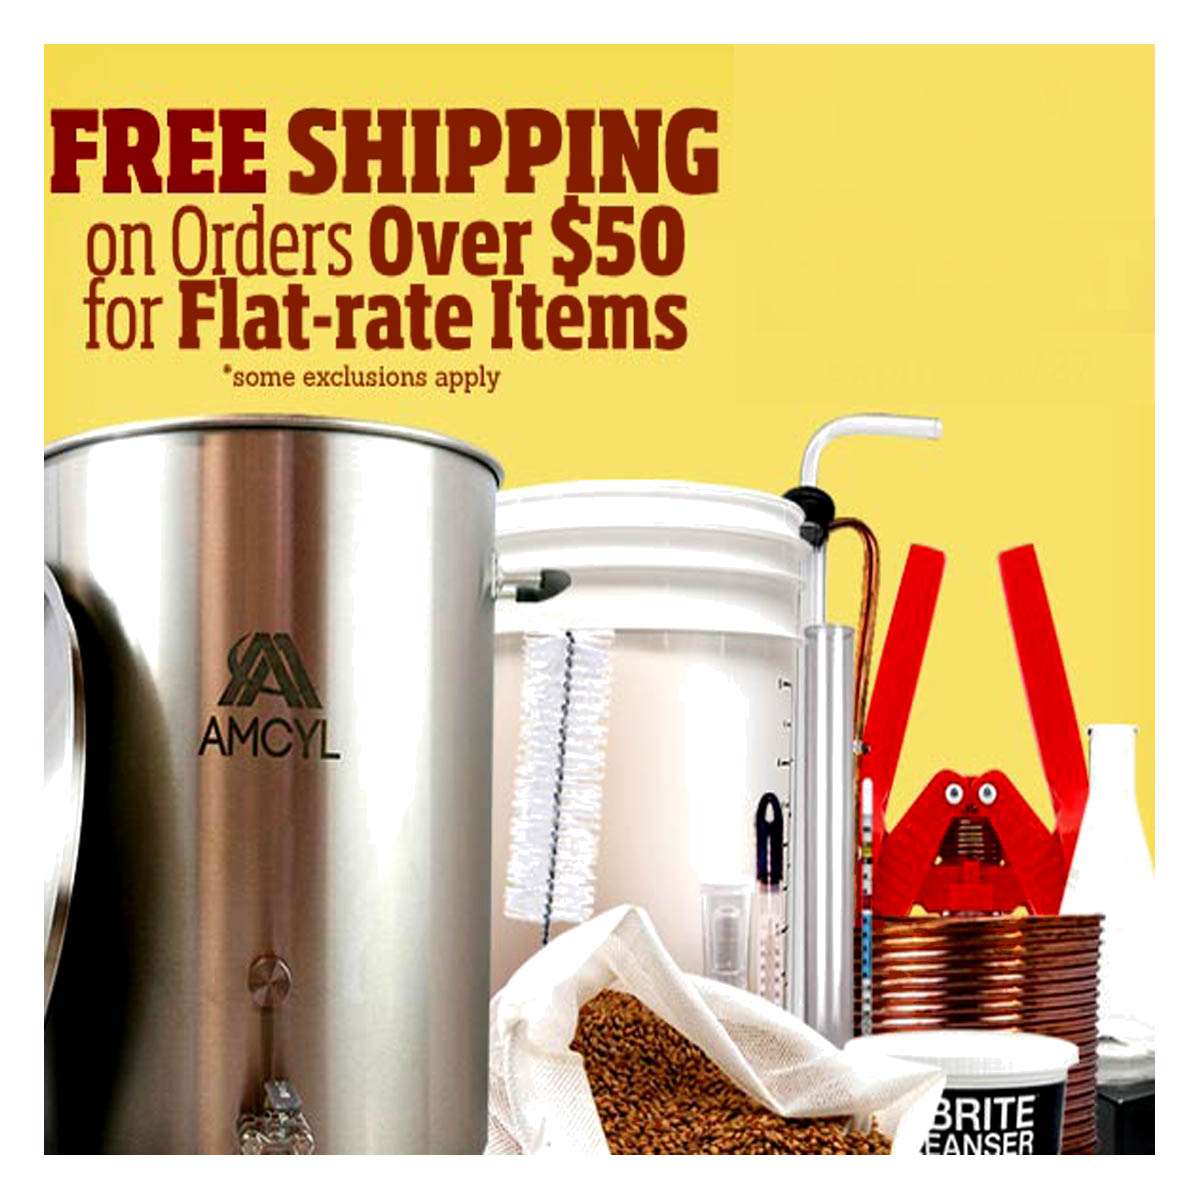 Free Shipping Promo Code for HomebrewSupply.com Coupon Code